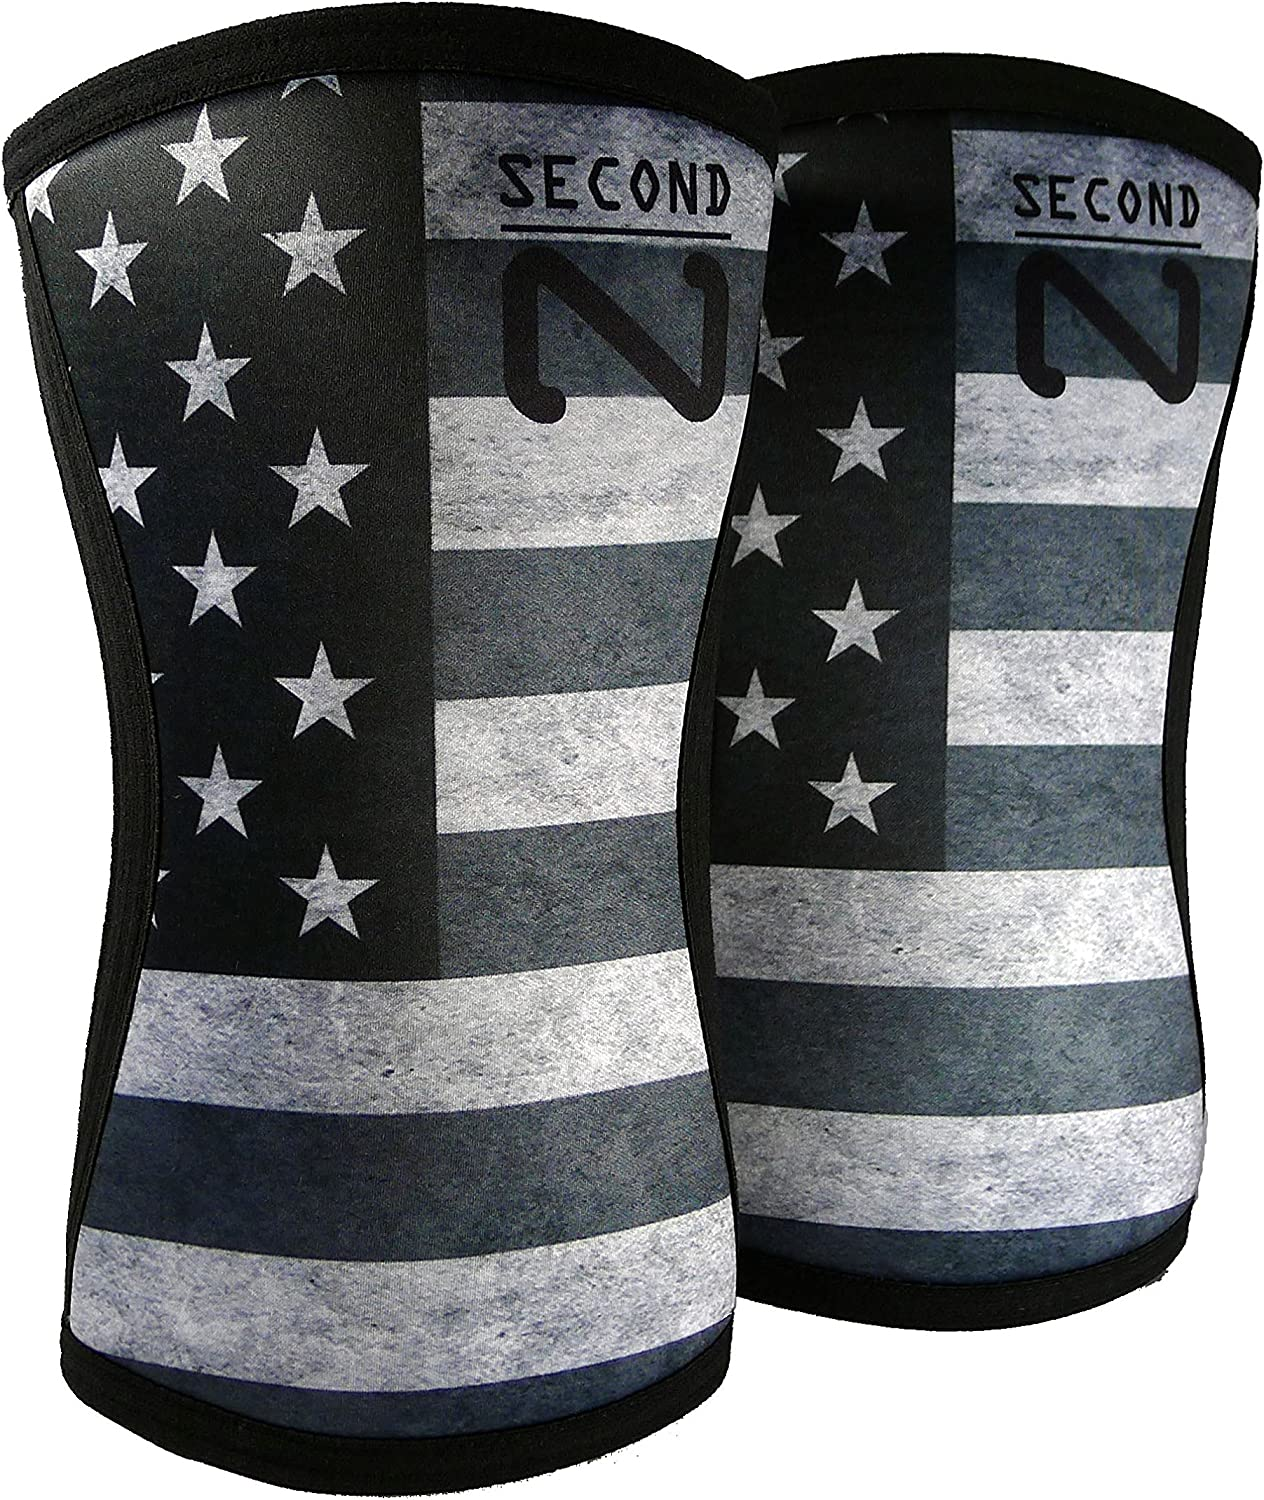 Second Nature Knee Sleeves (1 Pair) 7mm Neoprene Support for Weightlifting, Powerlifting & Squats  Unisex